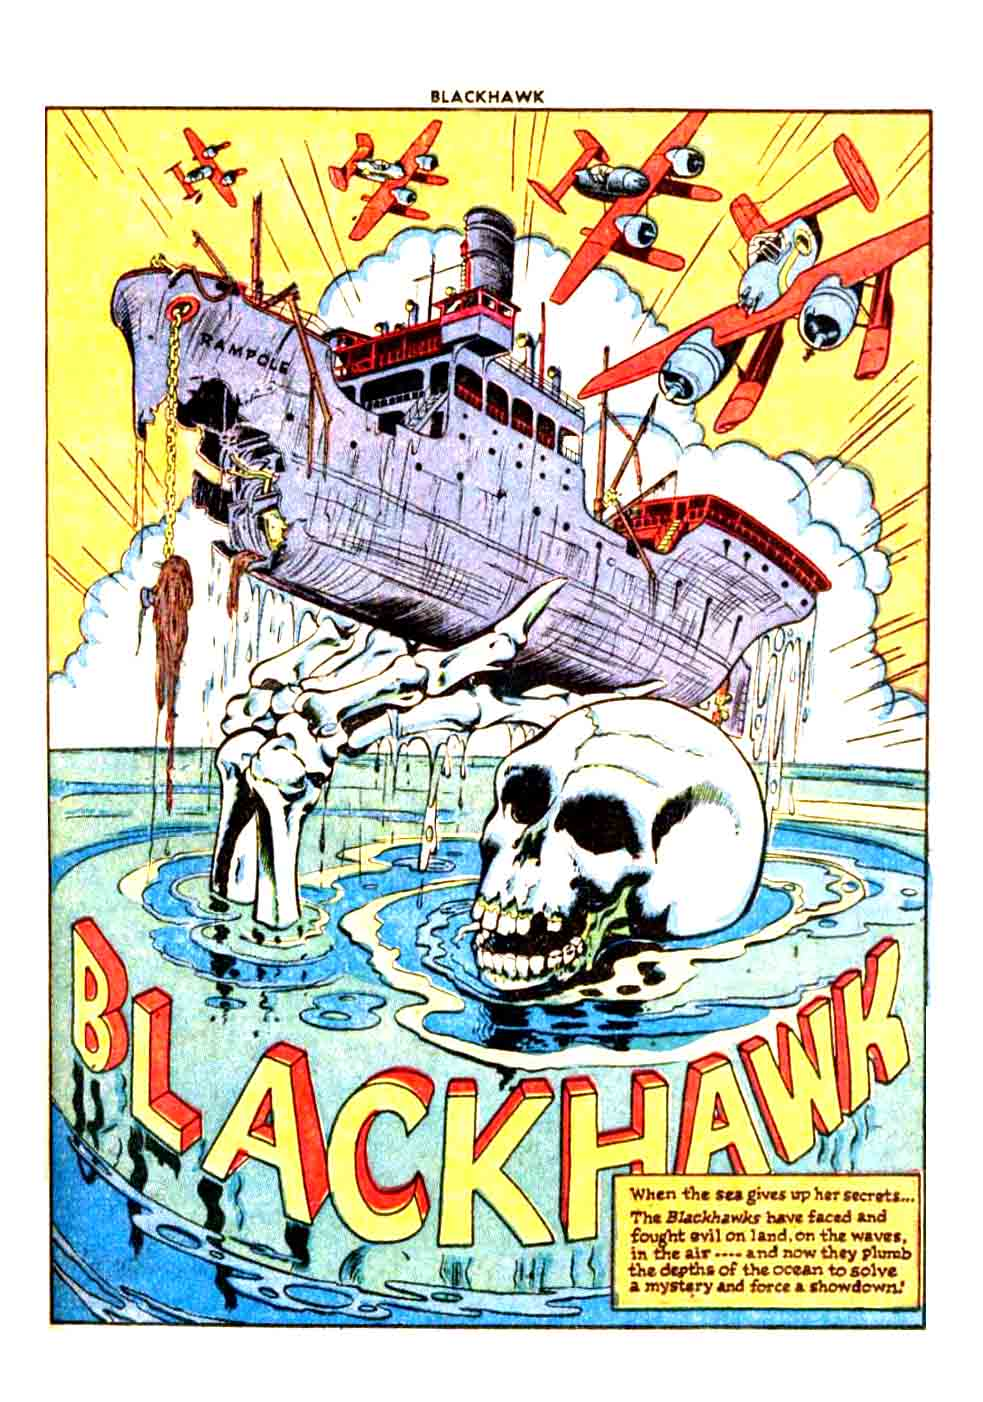 Blackhawk #10 The Wreck of the Rampole (Spring 1946)